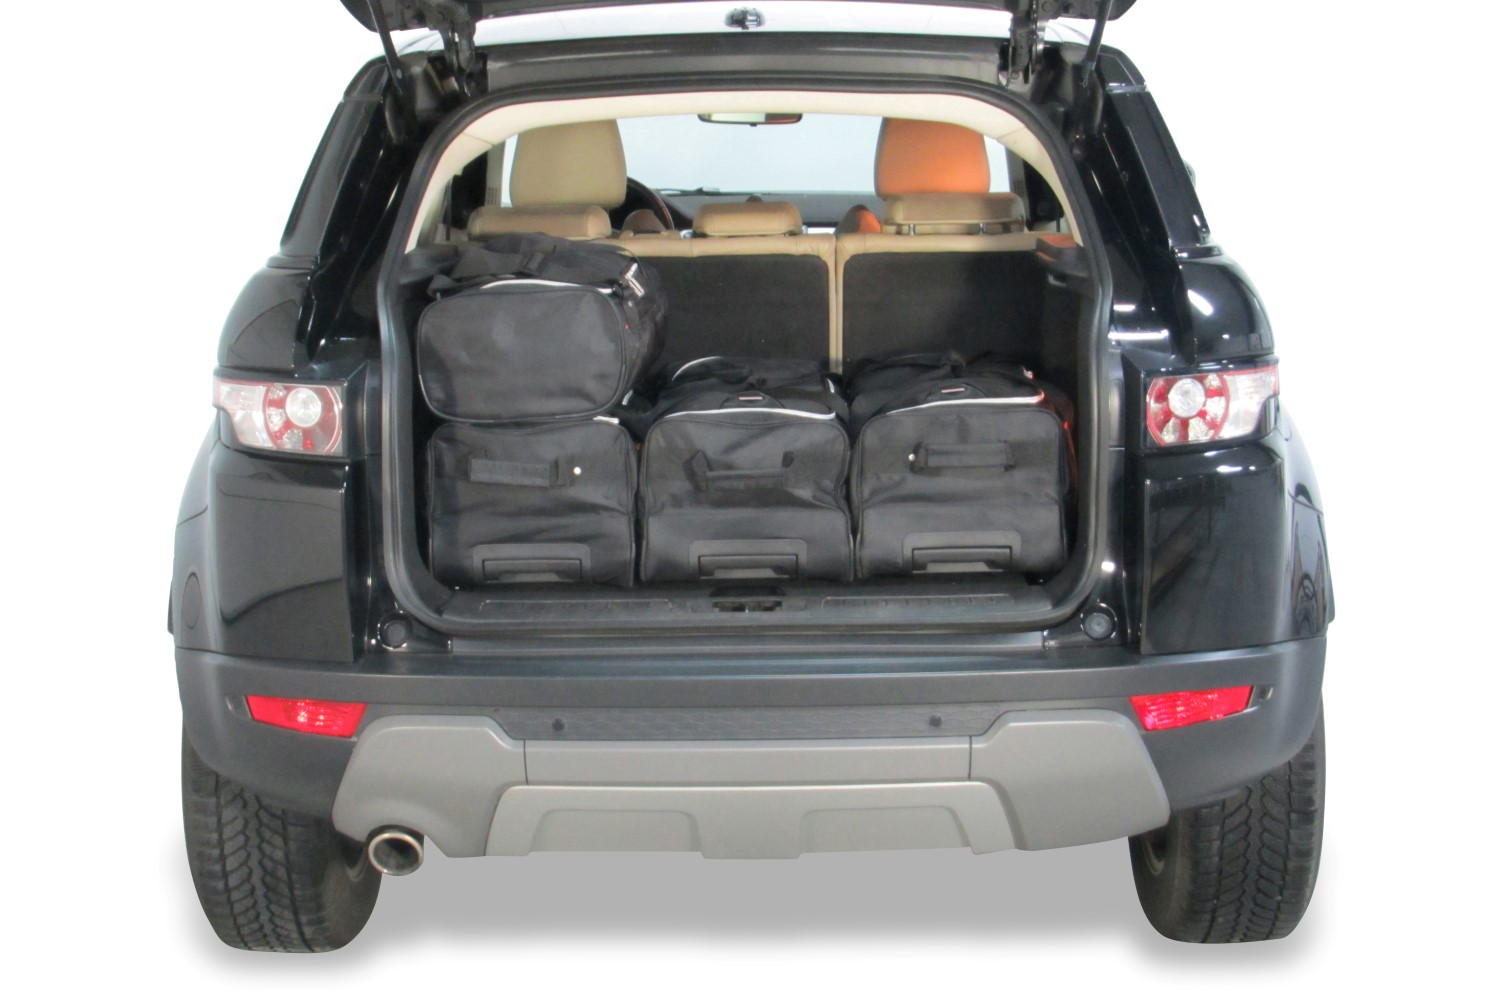 range rover evoque range rover evoque l538 2011 heden. Black Bedroom Furniture Sets. Home Design Ideas